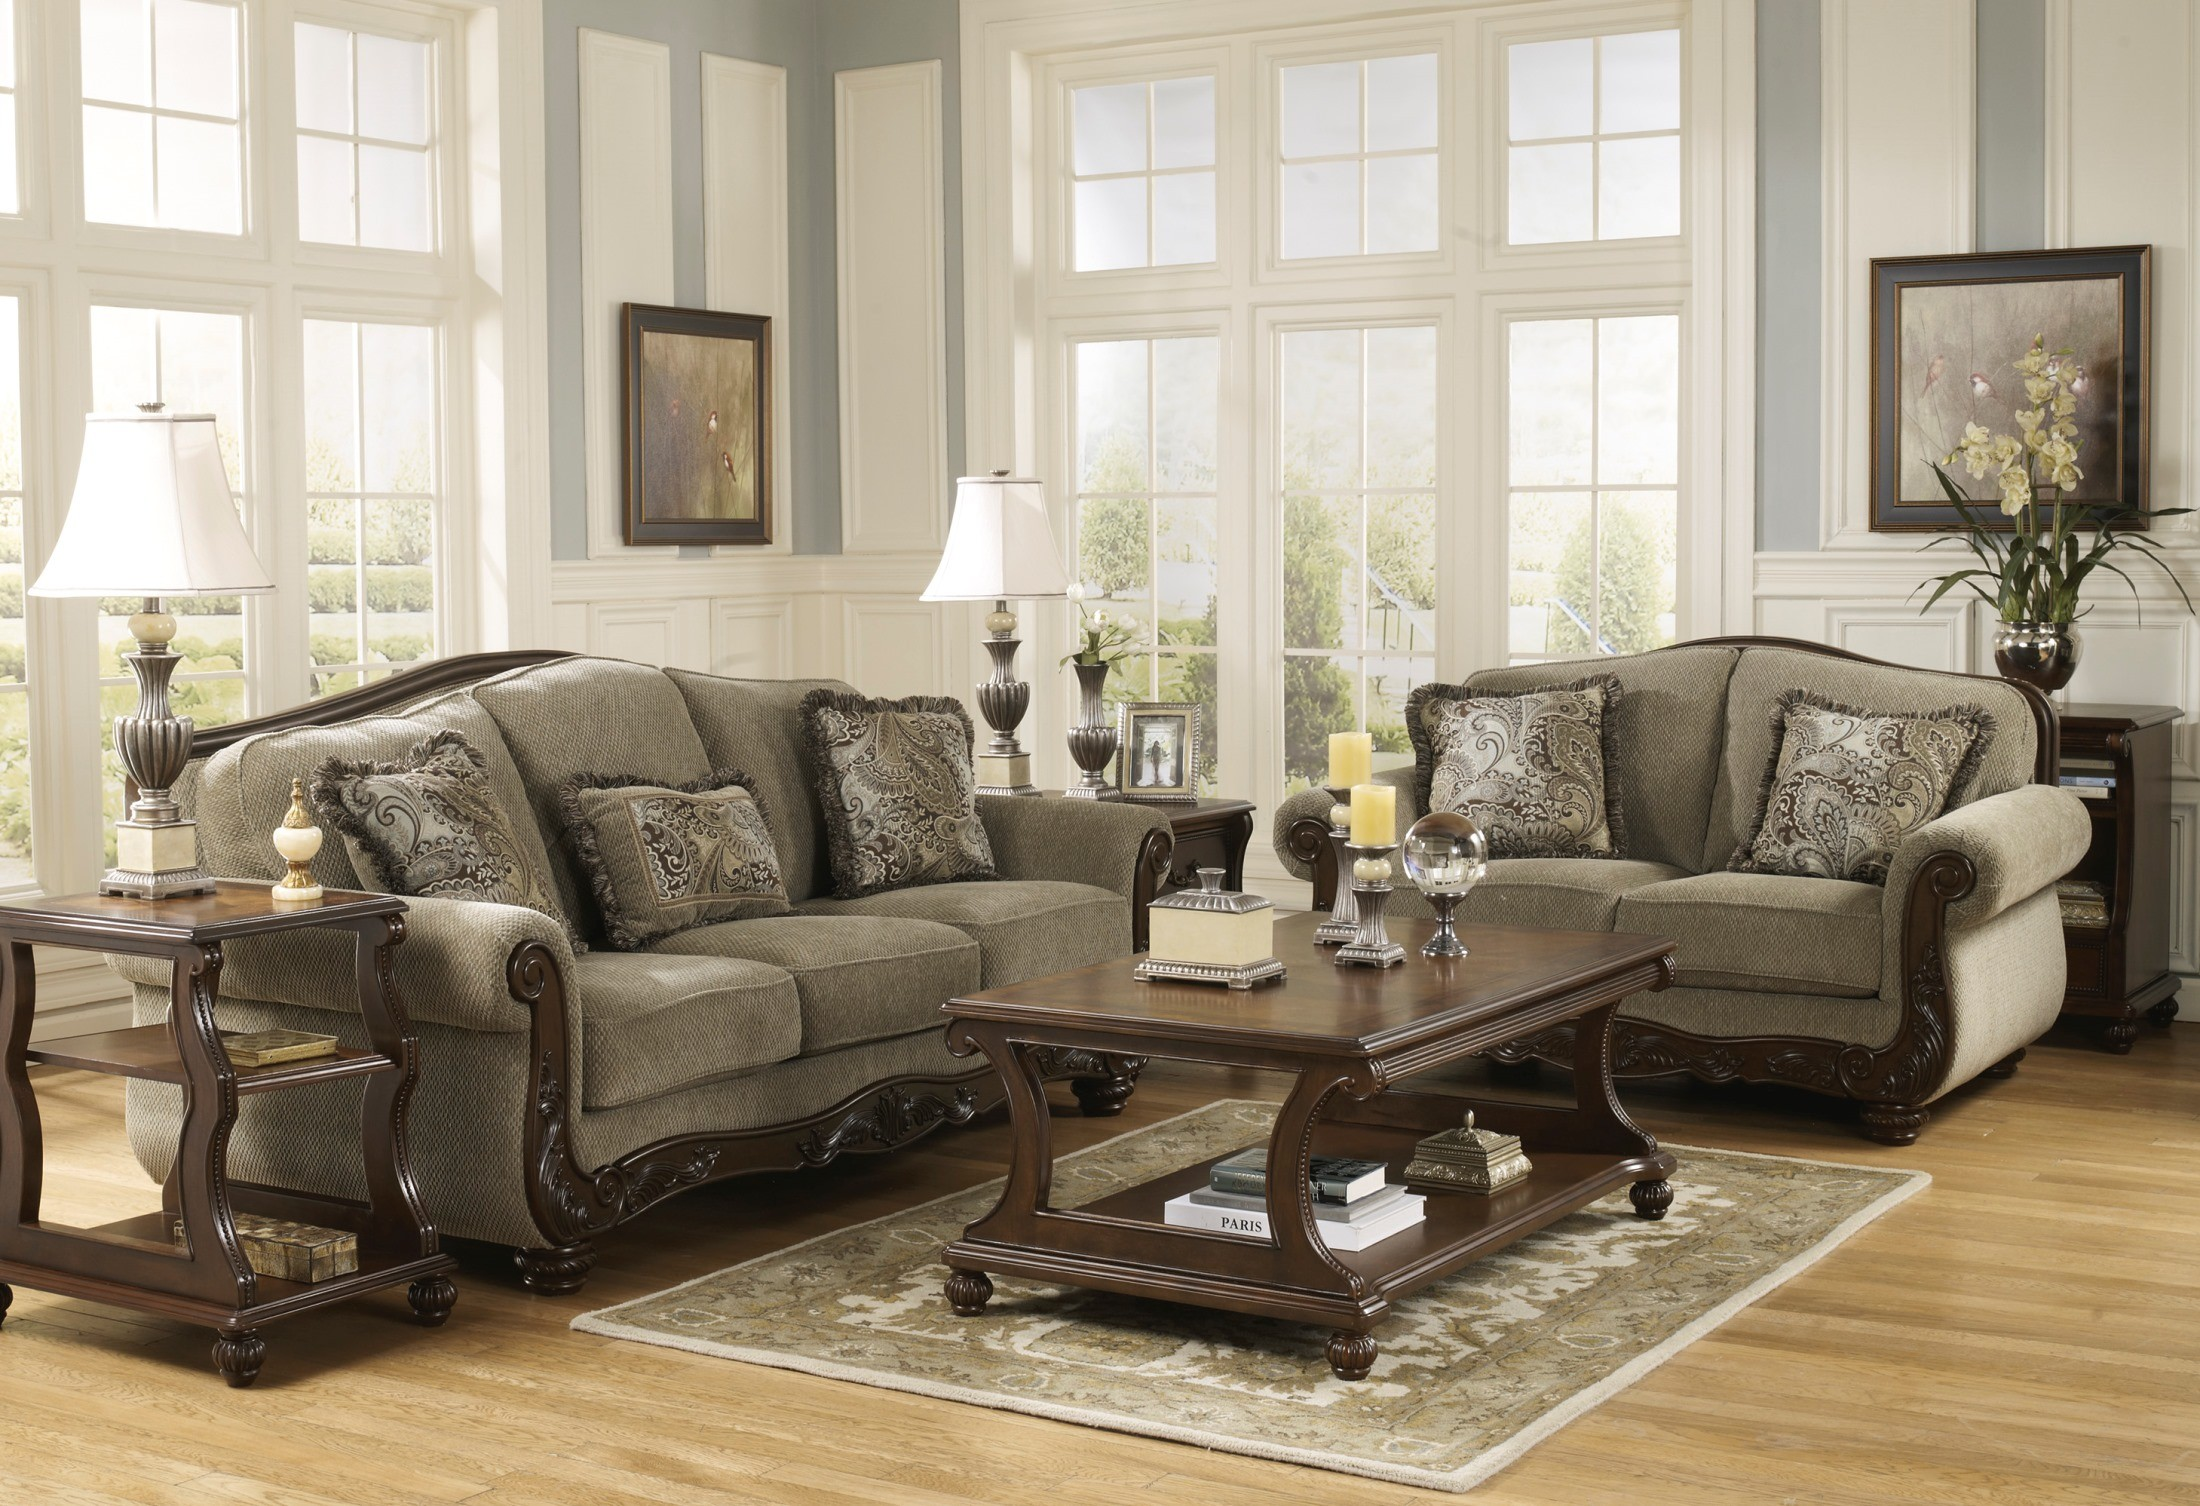 Martinsburg Meadow Living Room Set From Ashley (57300